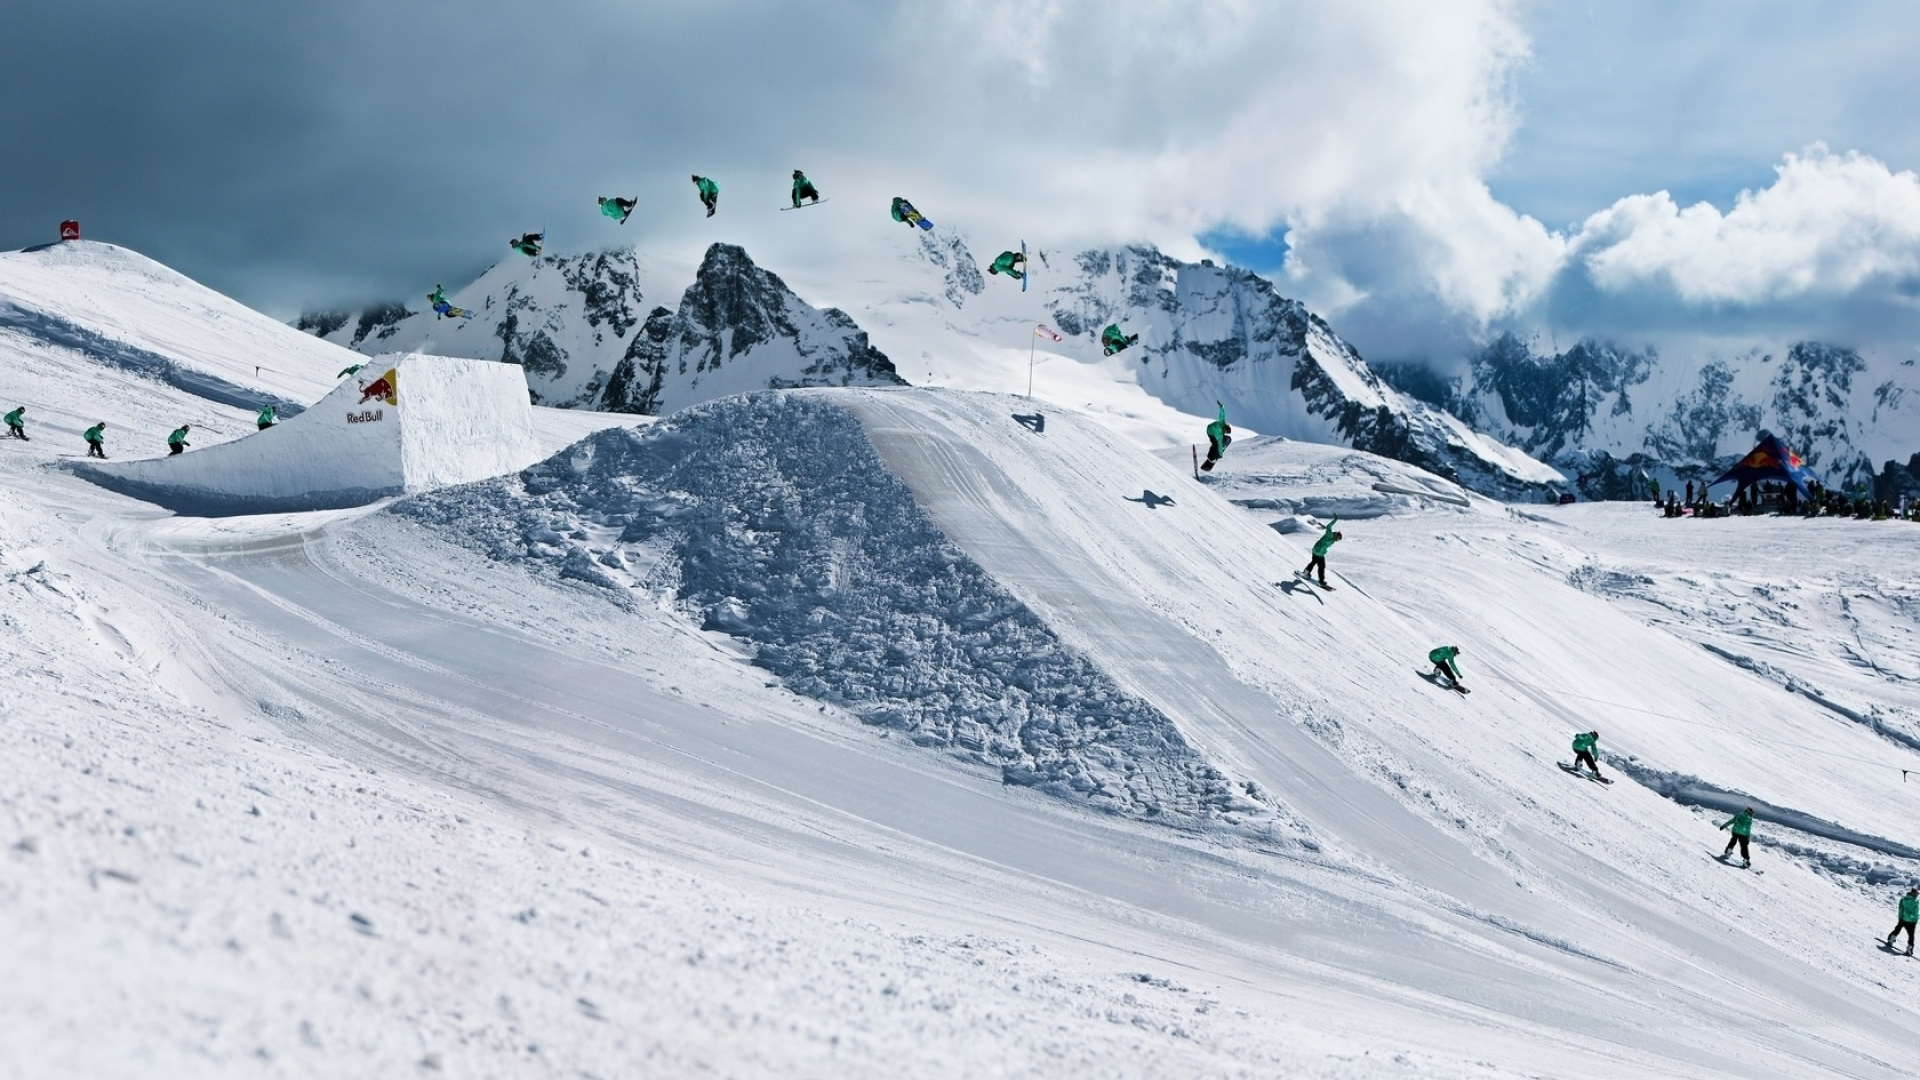 1920x1080 Snowboarding Red Bull Trick 1080p Laptop Full Hd Wallpaper Hd Sports 4k Wallpapers Images Photos And Background